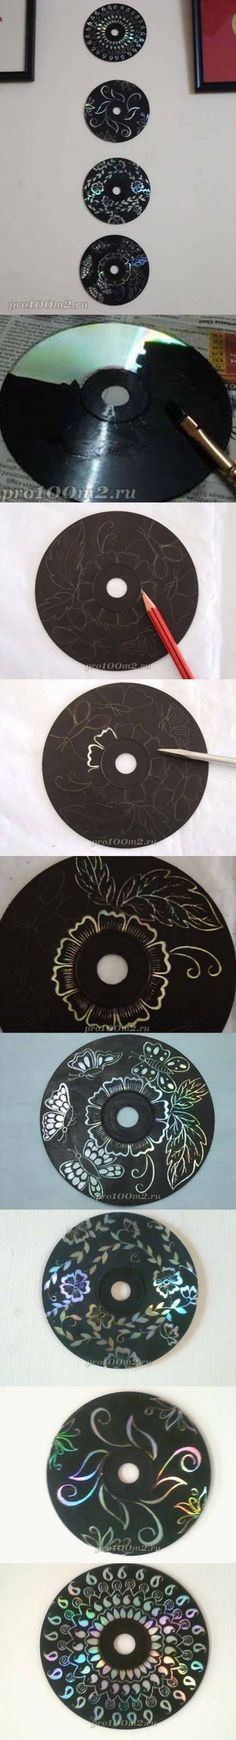 CD Art Recycled CDs - Possible Make & Take SRP prize? Have teen volunteers paint (Monticello volunteer time project? Give painted CD with skewer in ziplock bag as prize. Cd Crafts, Crafts To Do, Crafts For Kids, Arts And Crafts, Teen Crafts, Creative Crafts, Creative Art, Art Cd, Recycled Cds